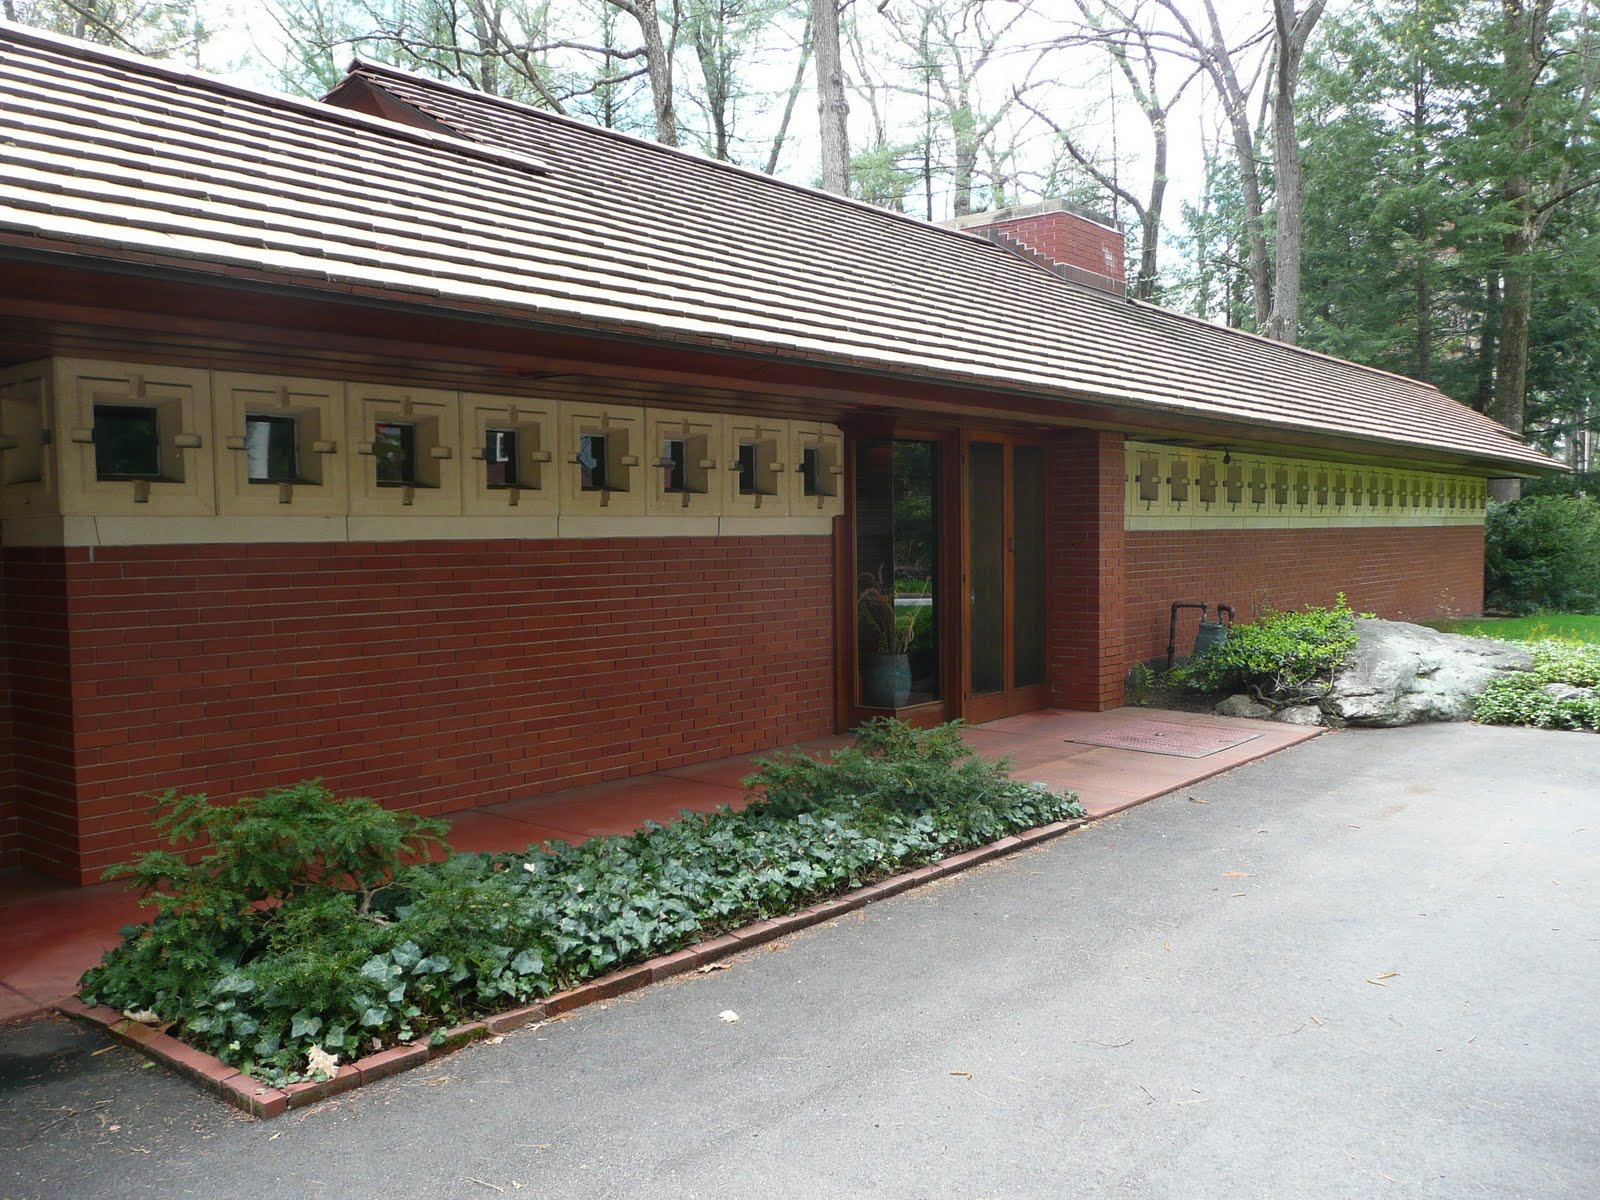 The front or private side of Wright's Zimmerman House with its main entrance and small windows.